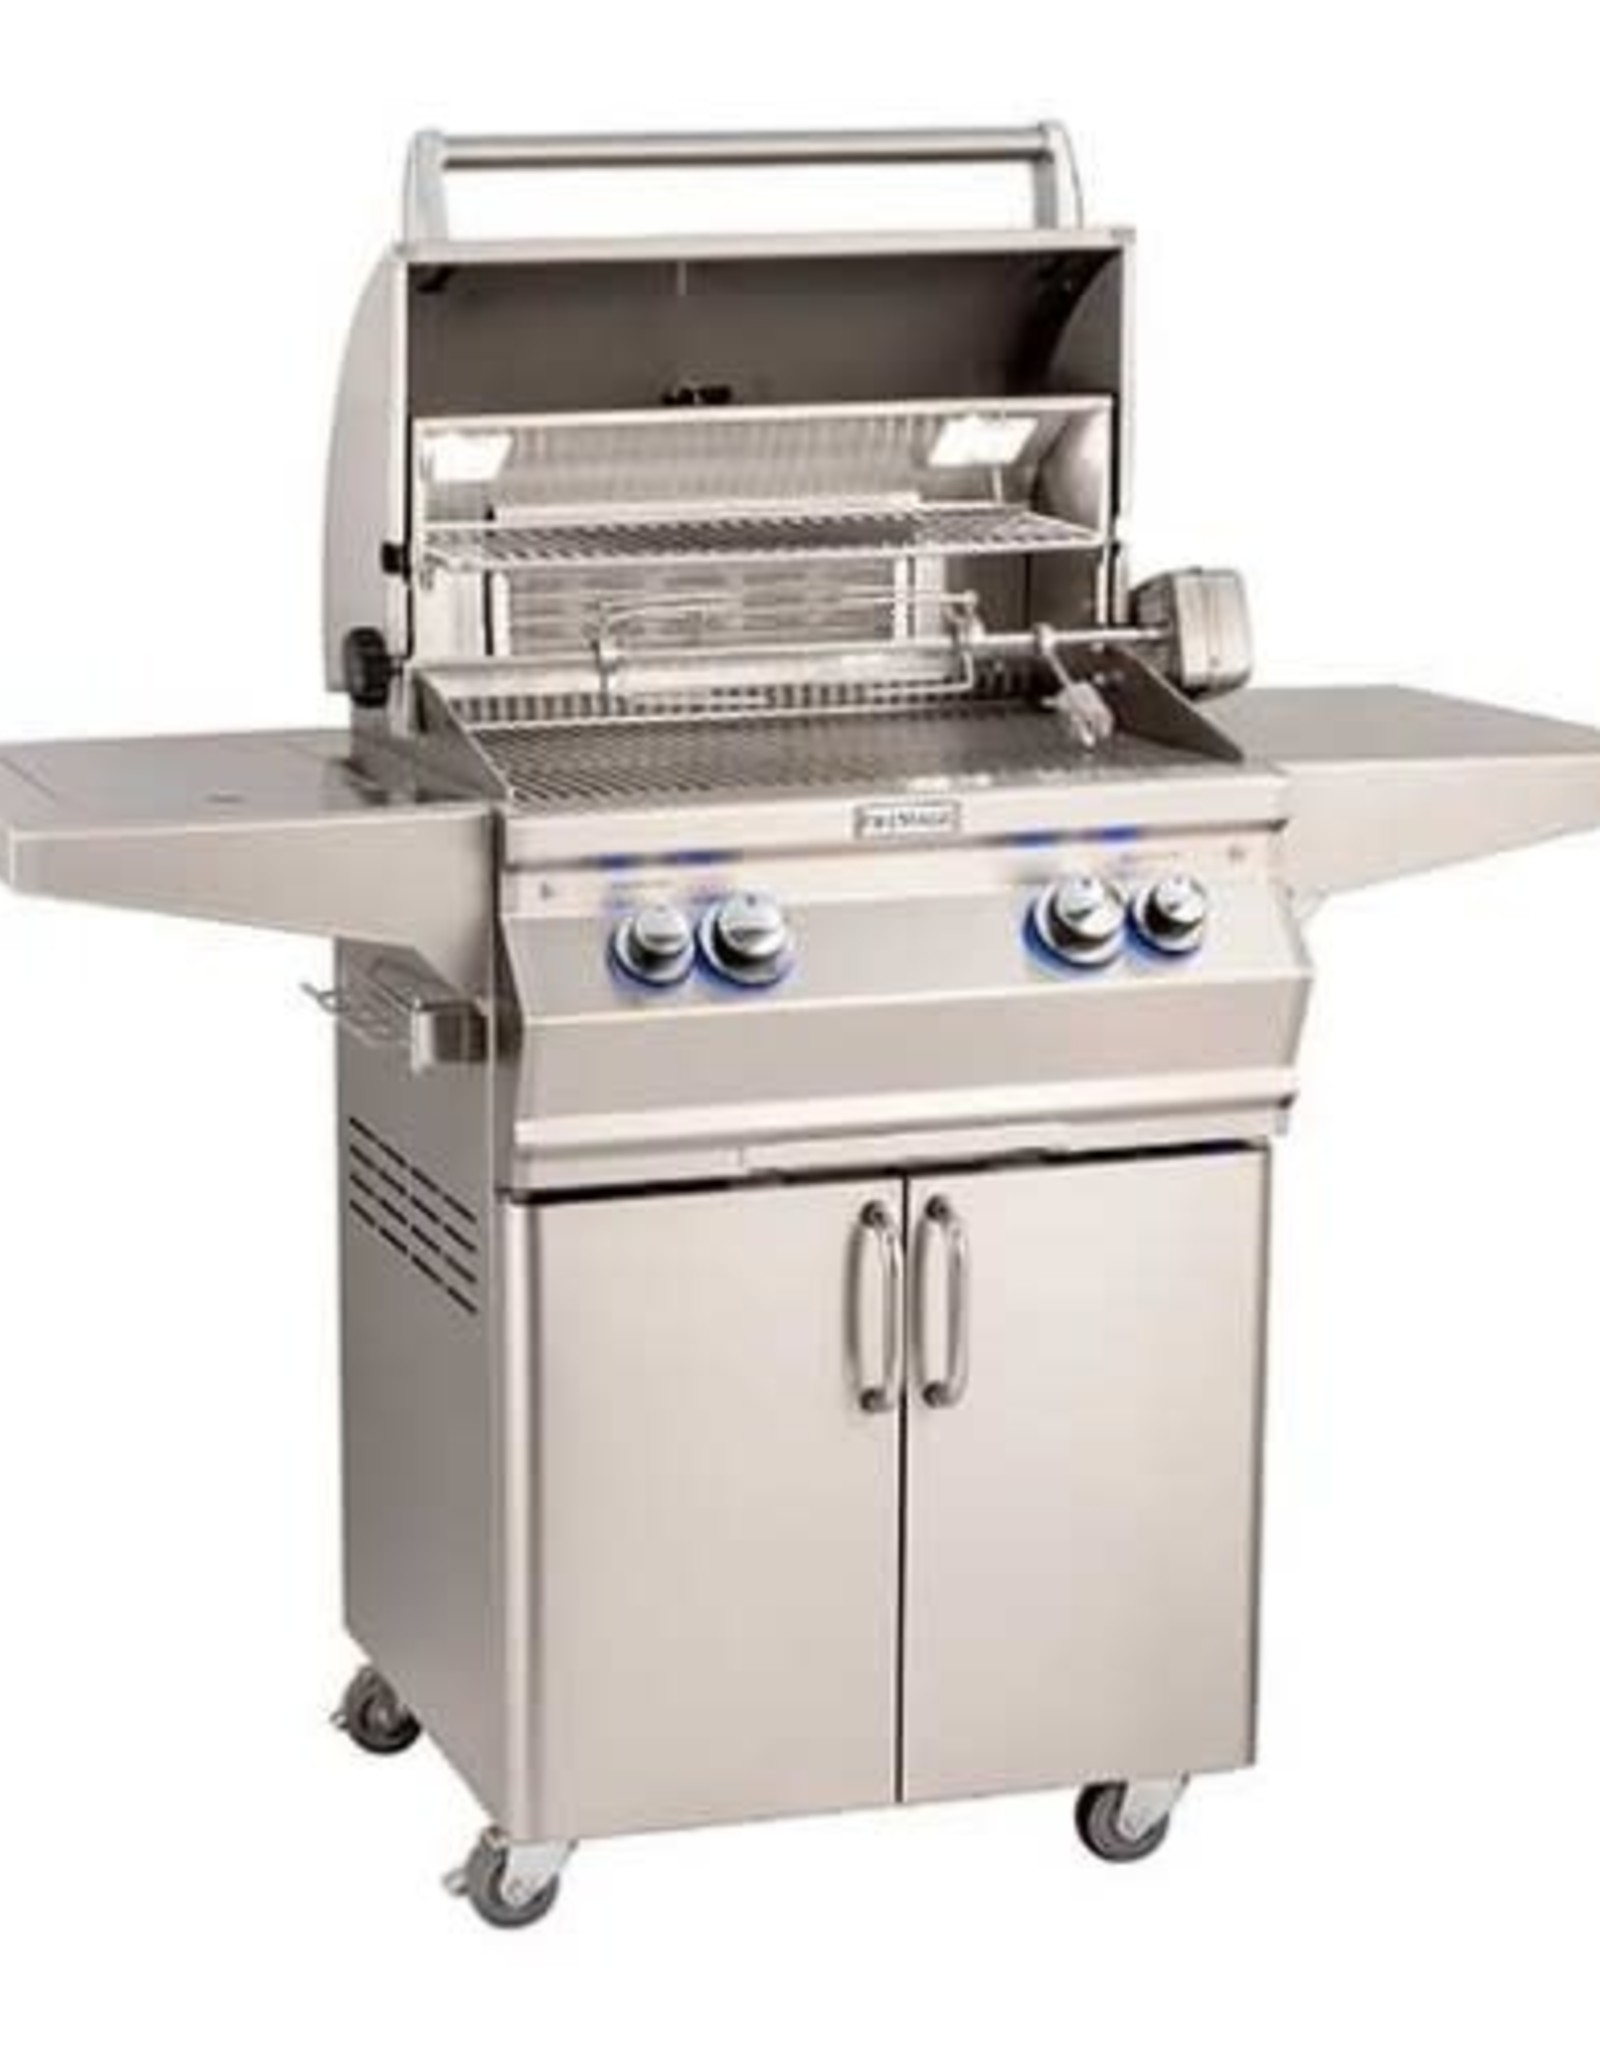 Fire Magic Fire Magic - Aurora A430s 24-inch Portable Grill With Side Burner and Rotisserie